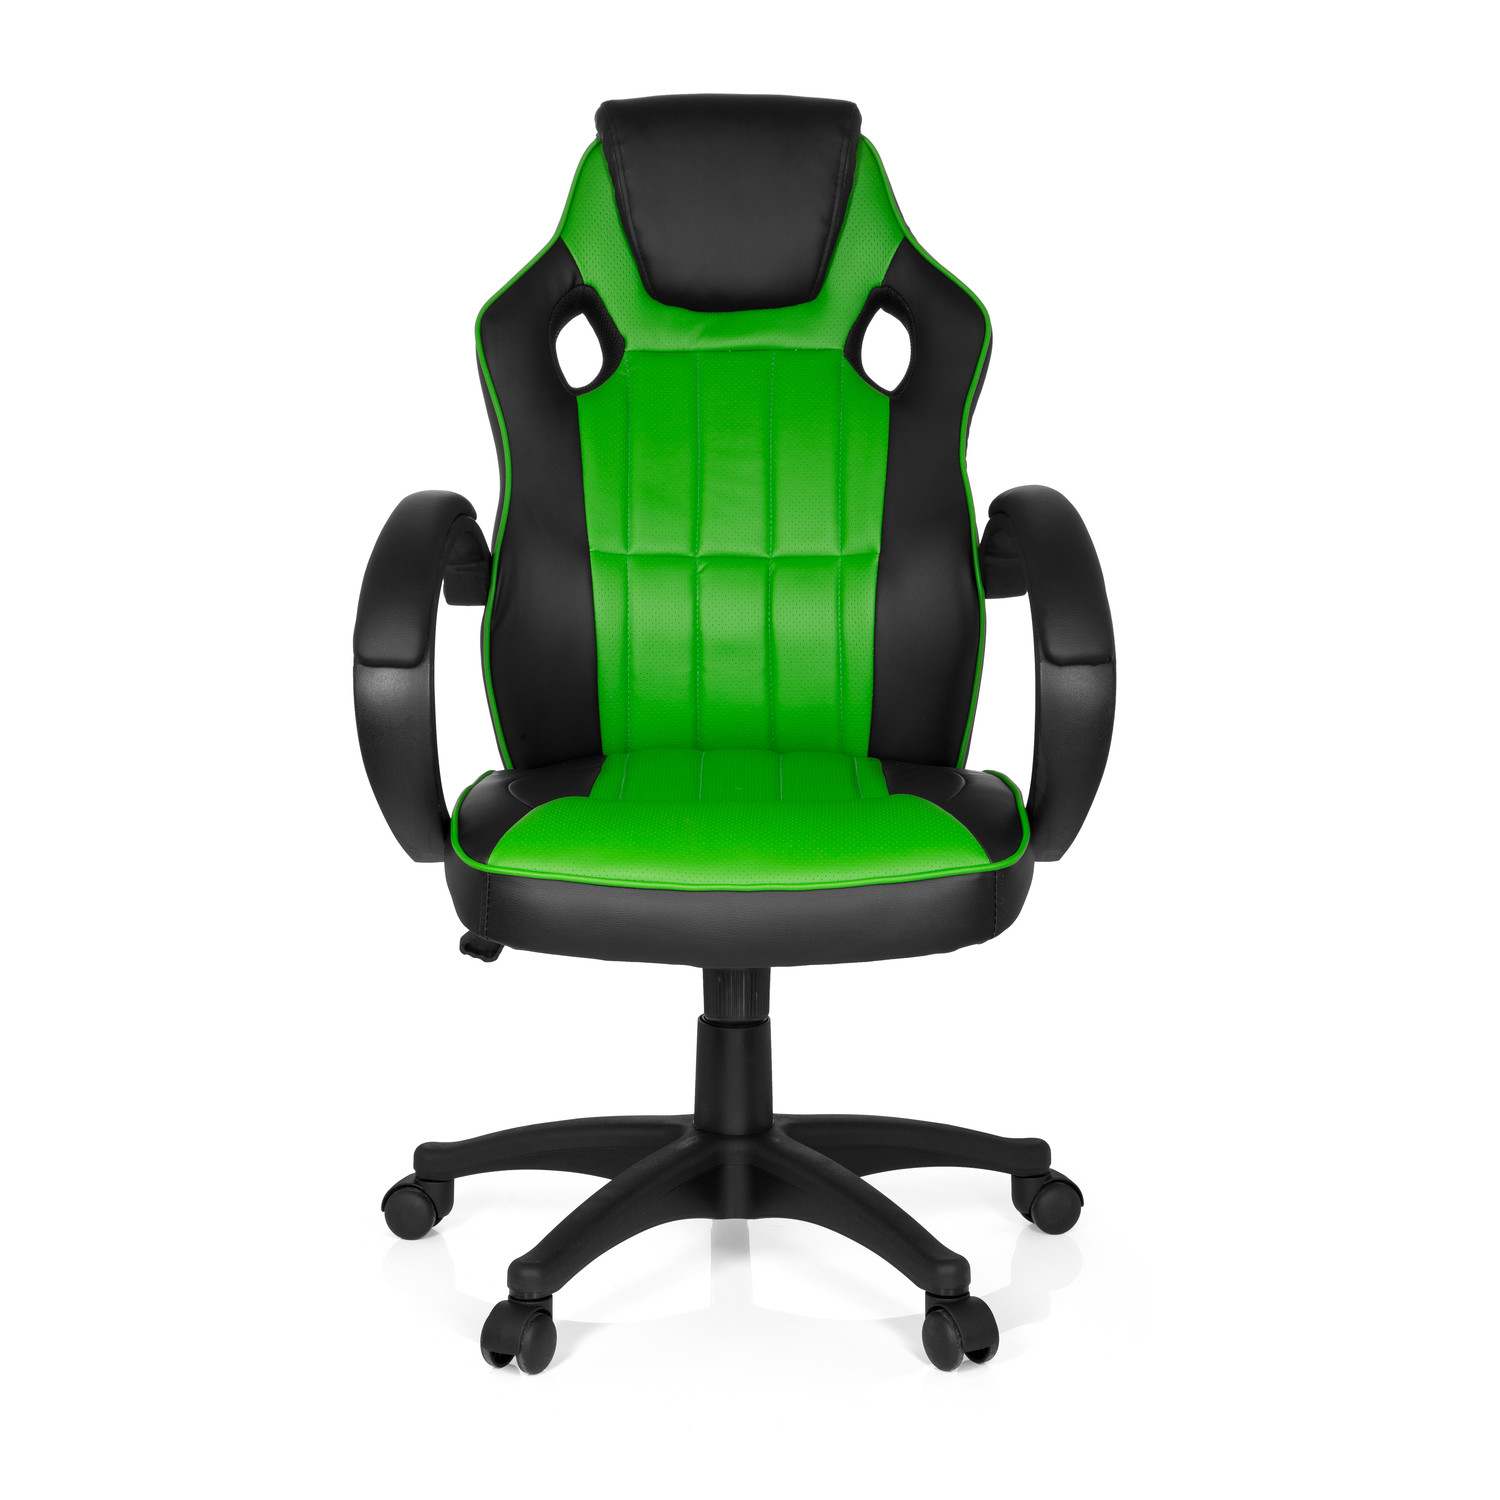 Silla gamer deportiva racer gaming pro exclusivo dise o for Sillas para pc precios